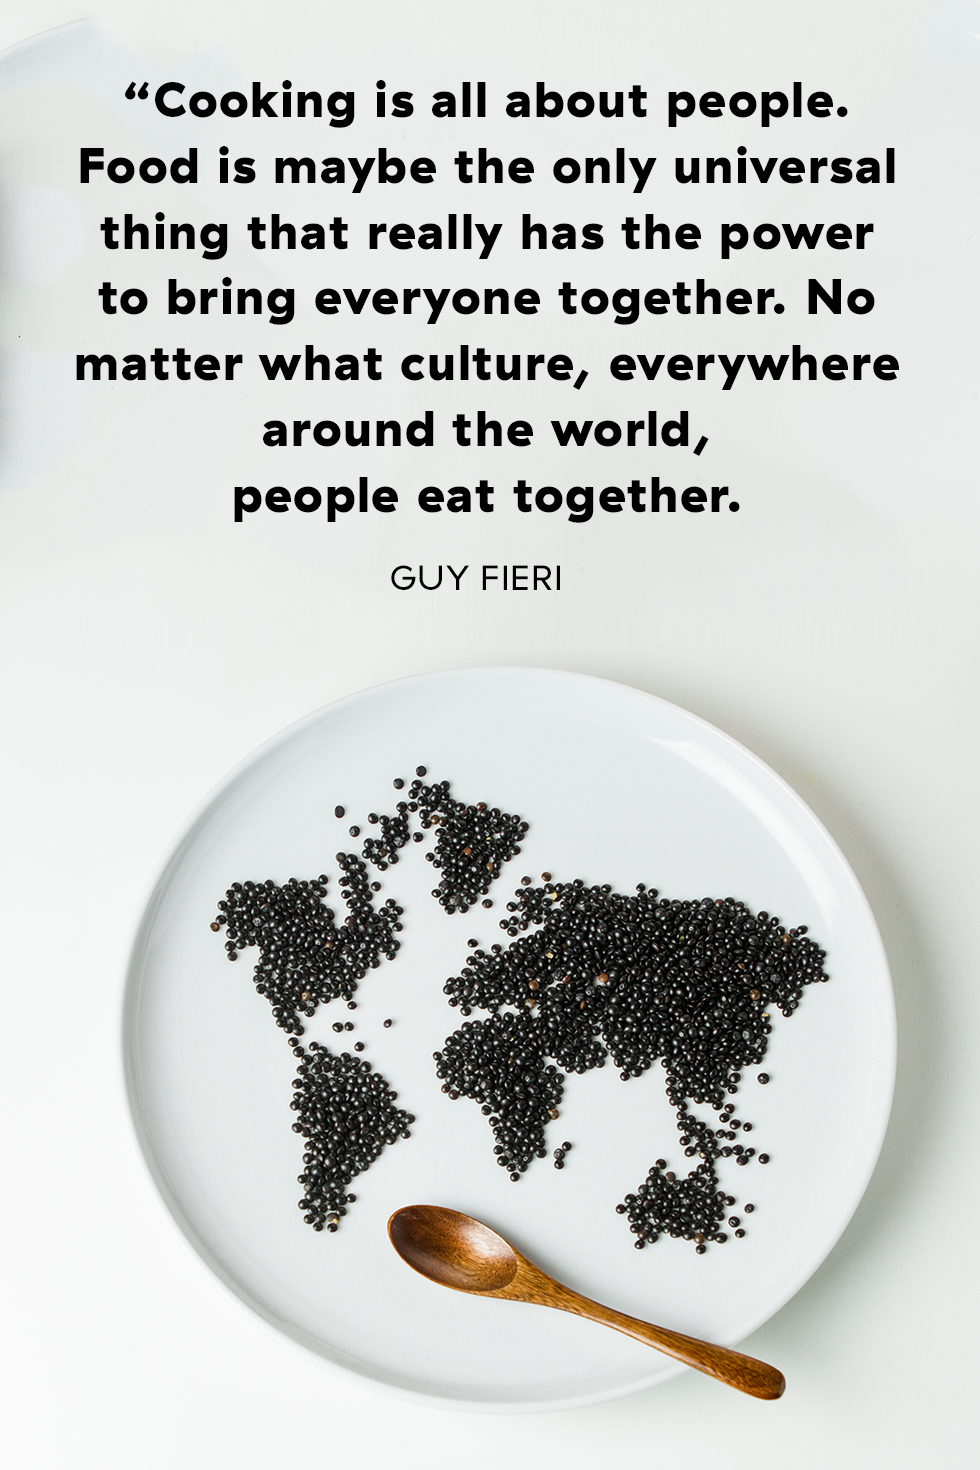 5 Best Food Quotes from Famous Chefs - Great Sayings About Eating